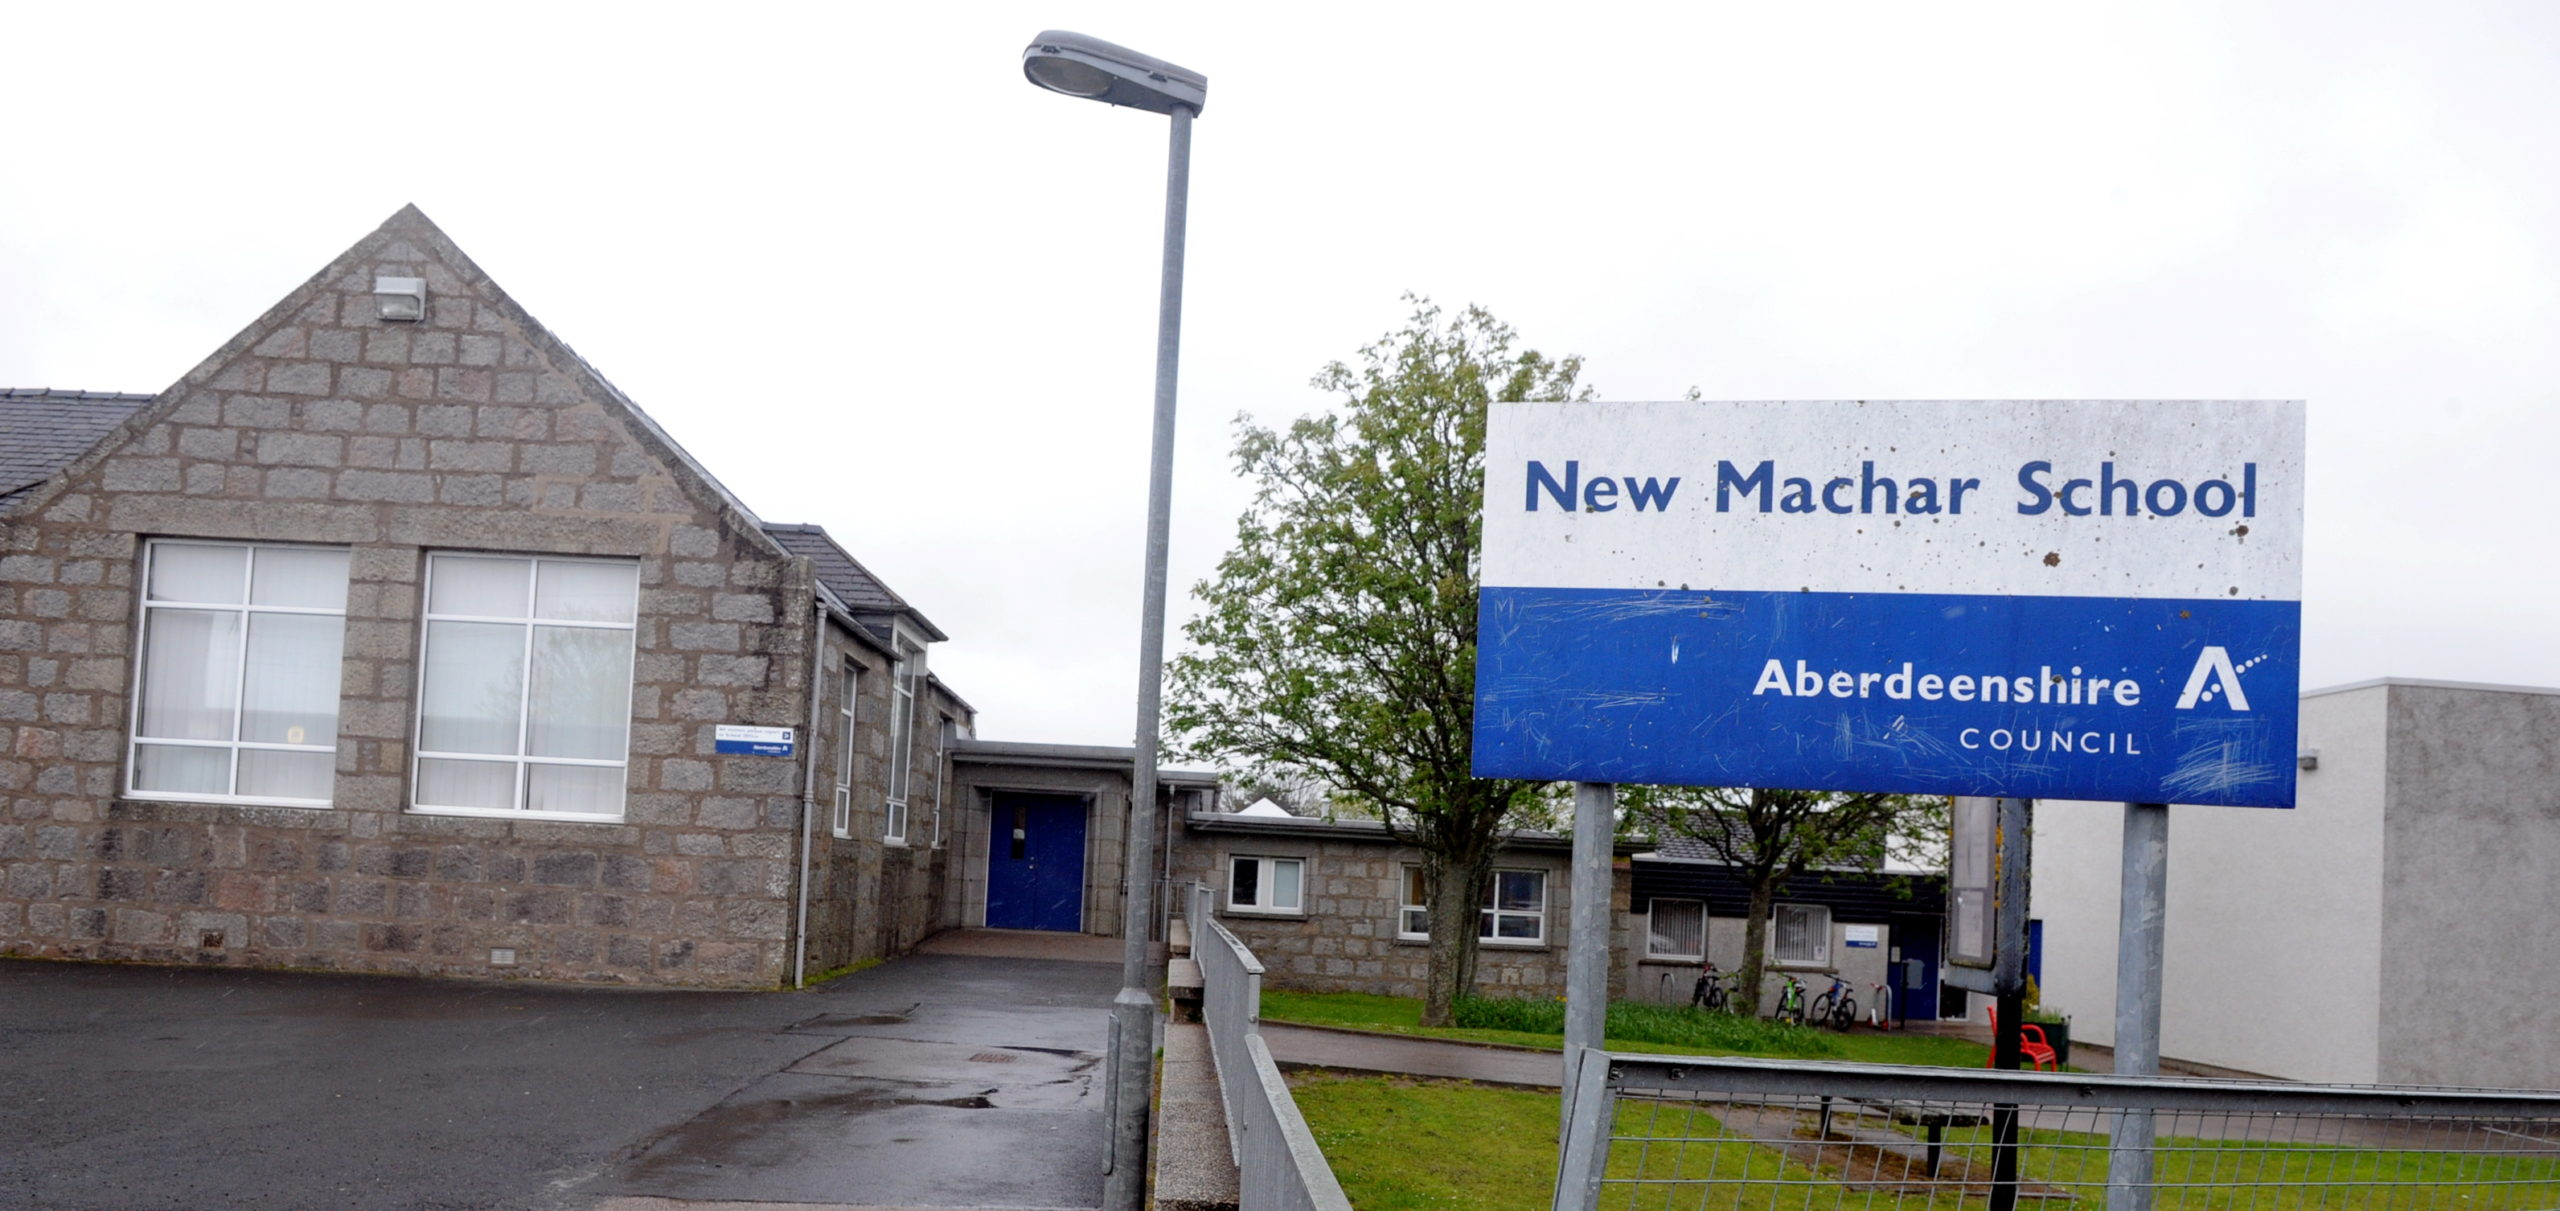 The nursery plans have been submitted for New Machar School